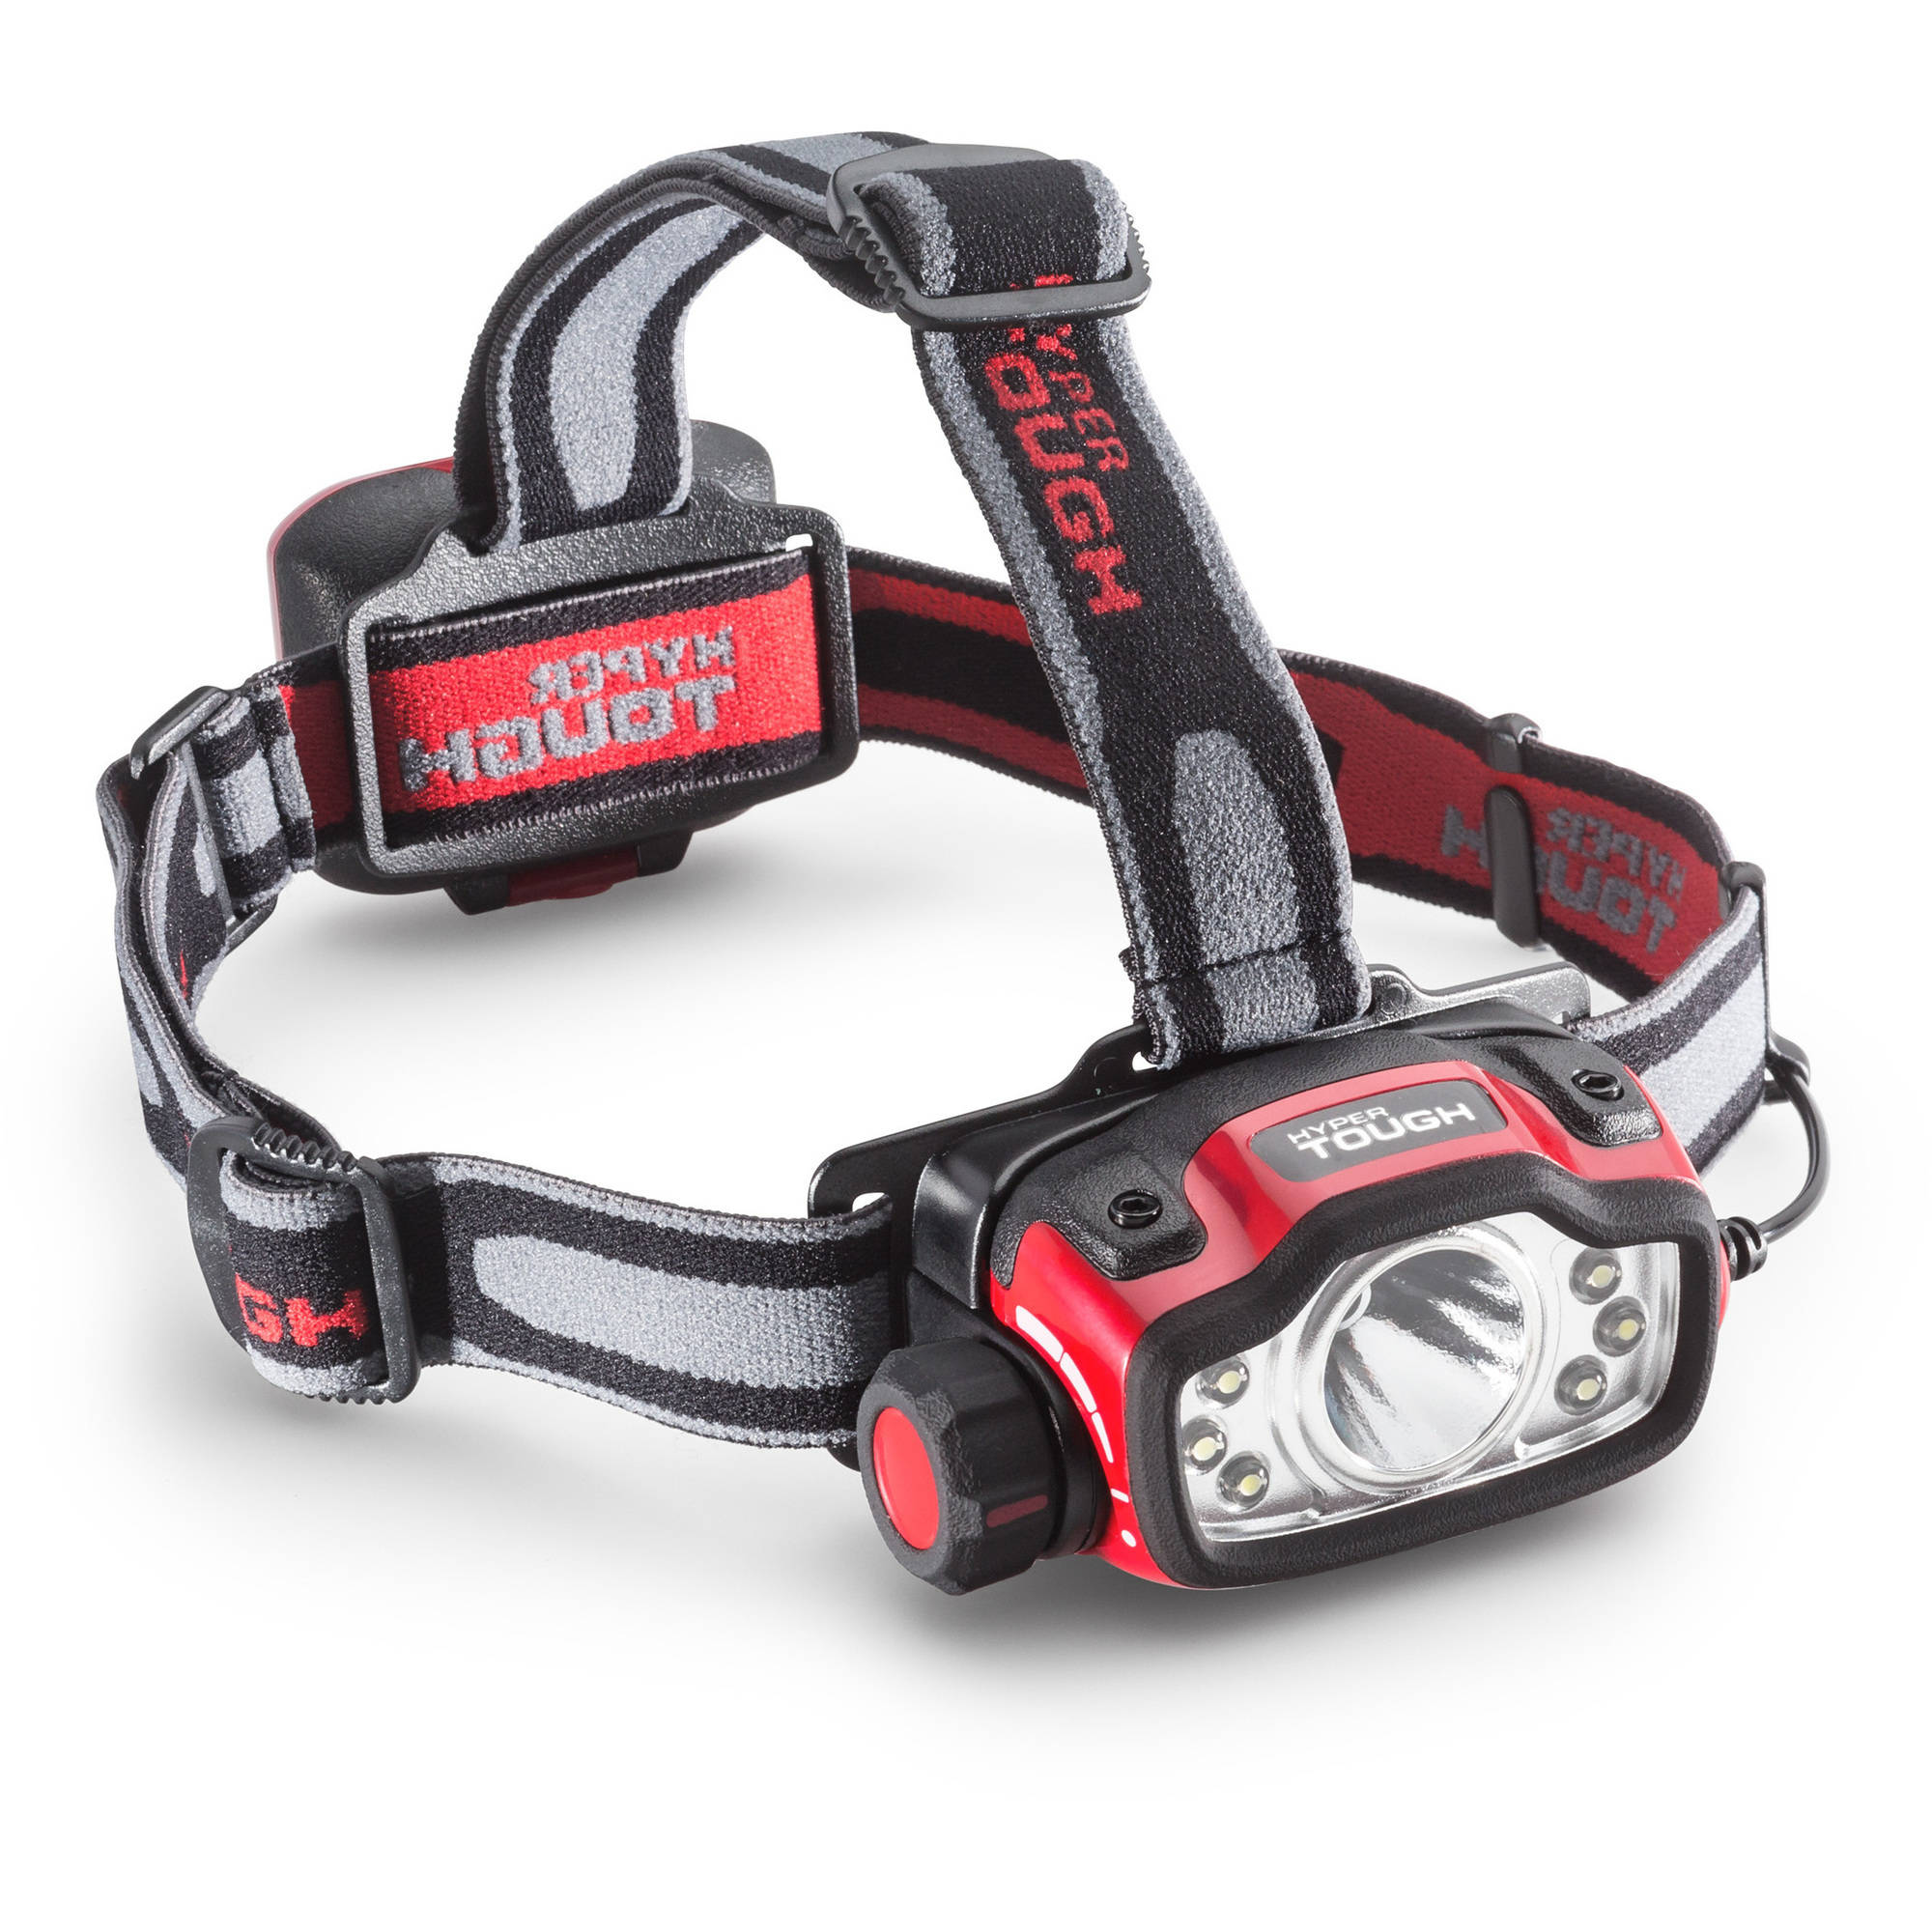 Hyper Tough 3AA 200-Lumen Headlamp